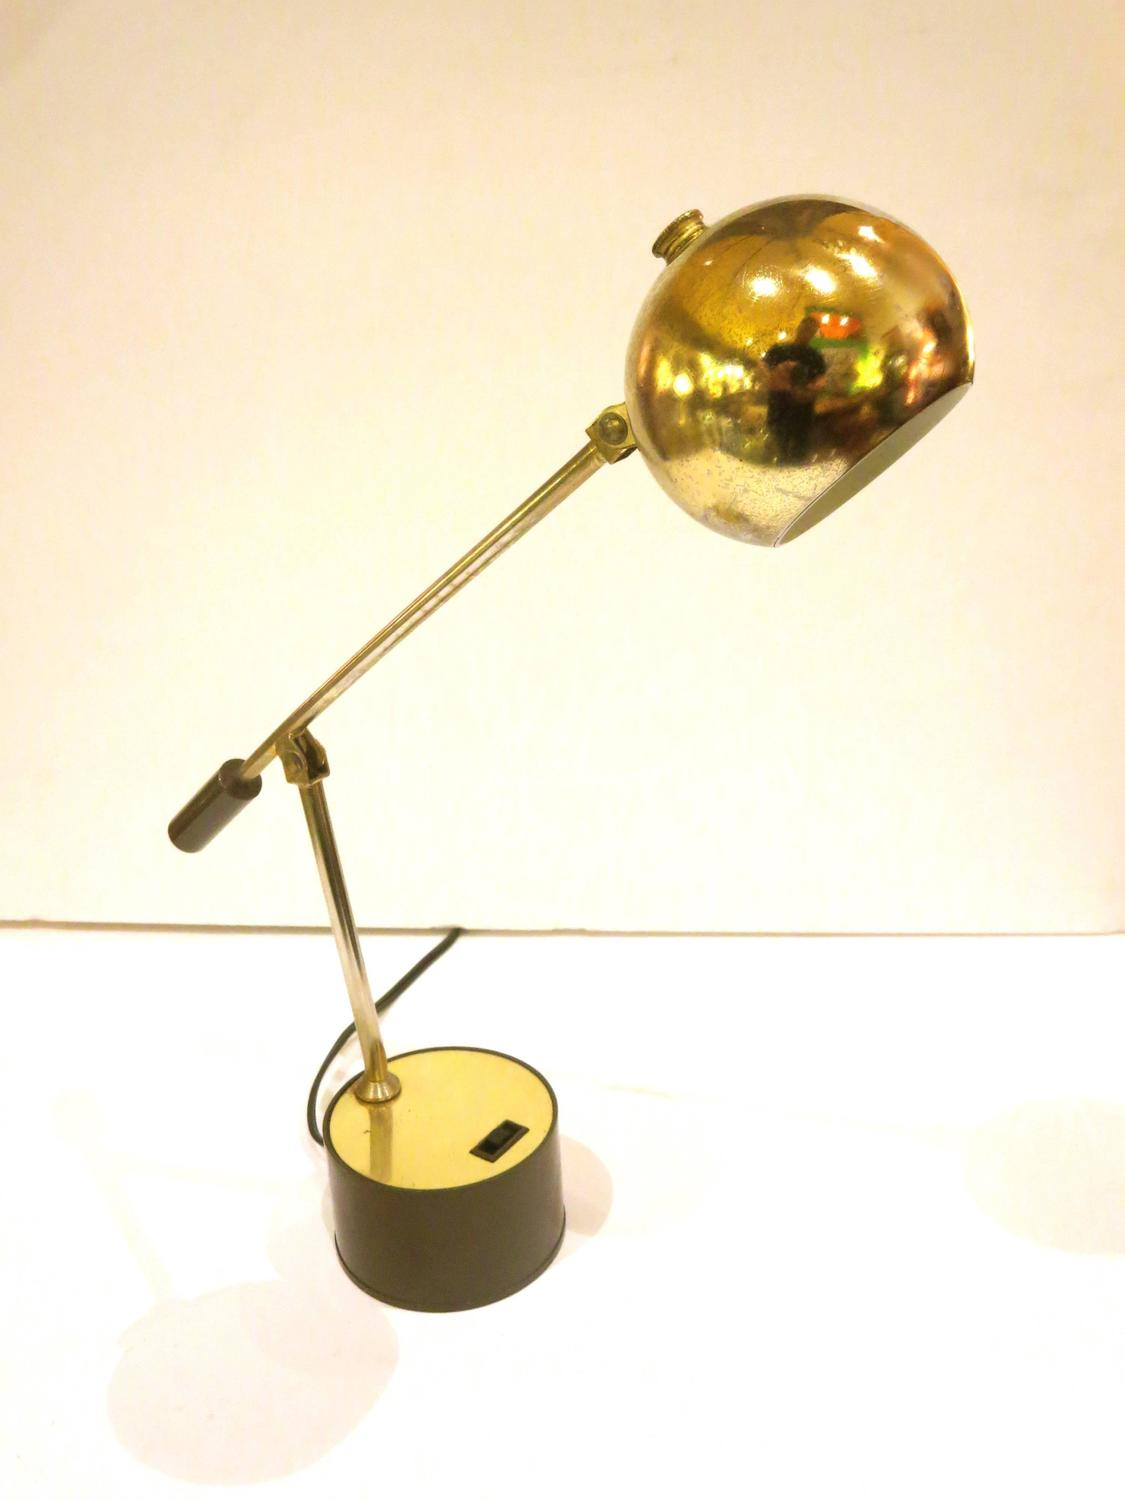 1960s American Modern Small Desk Table Lamp in Brass at 1stdibs